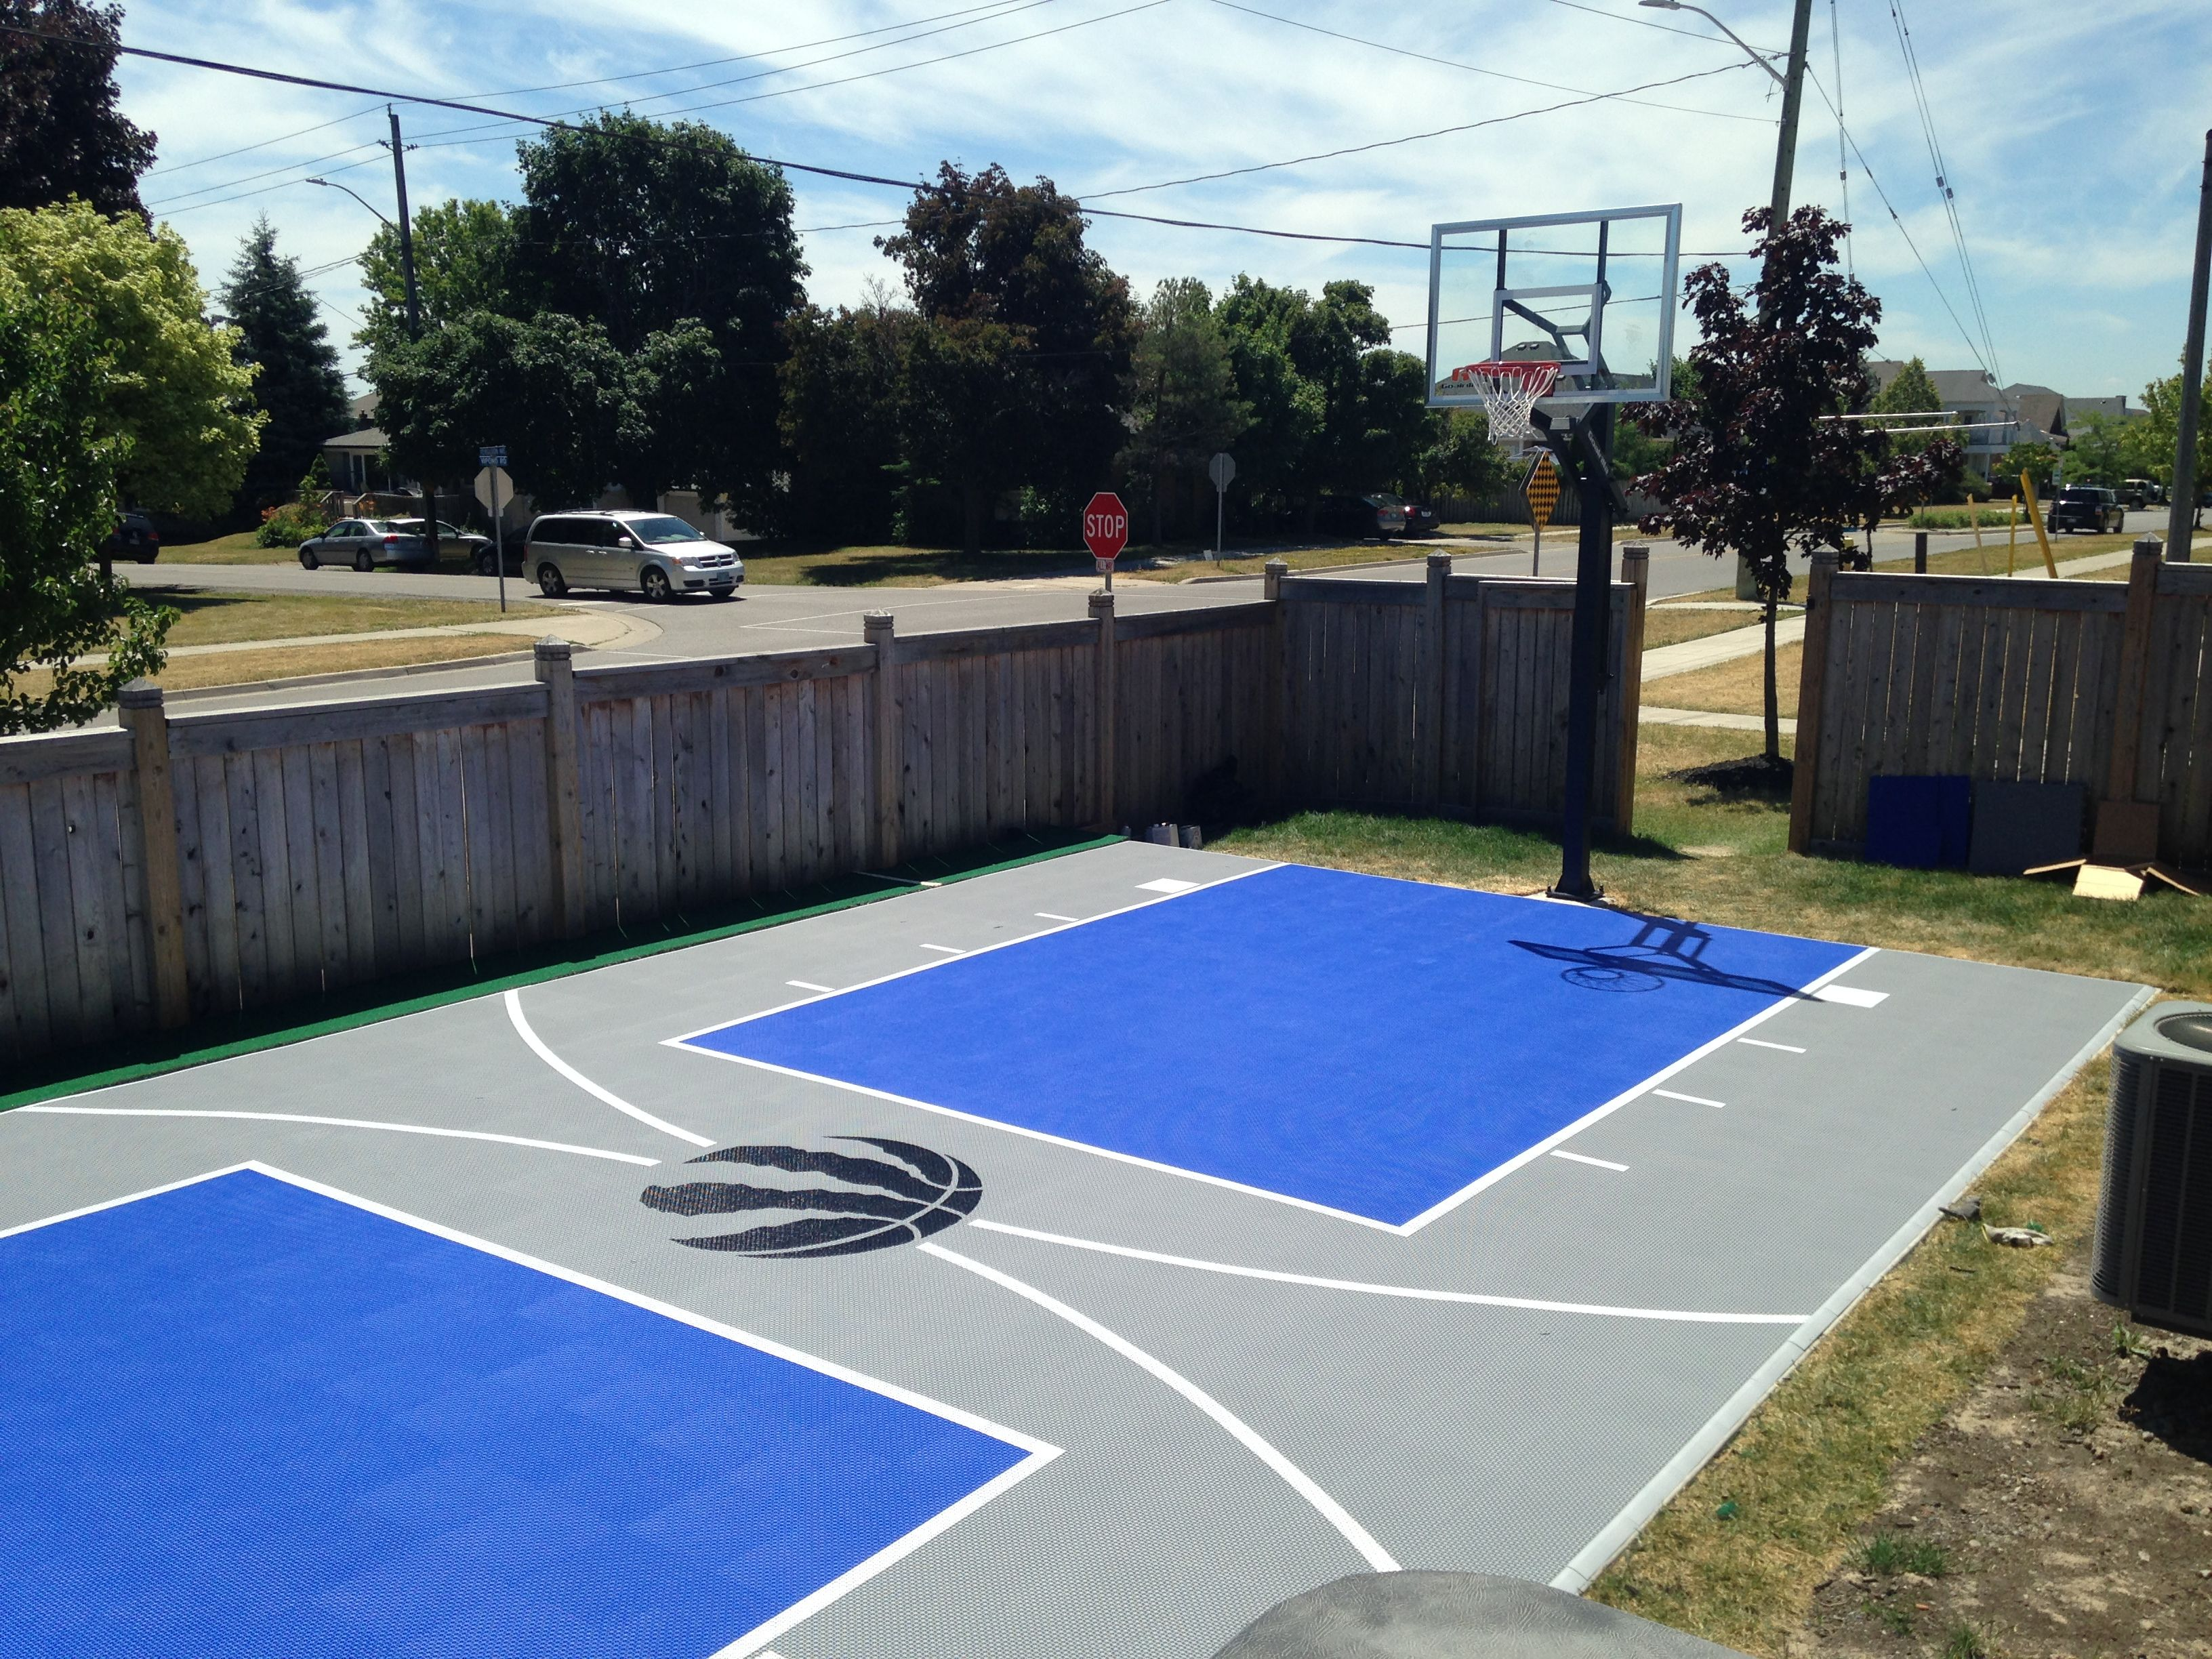 20 X 40 Basketball Court In Brooklin On Surfaces Is The Snapsports Duracourt Basketball Court Backyard Indoor